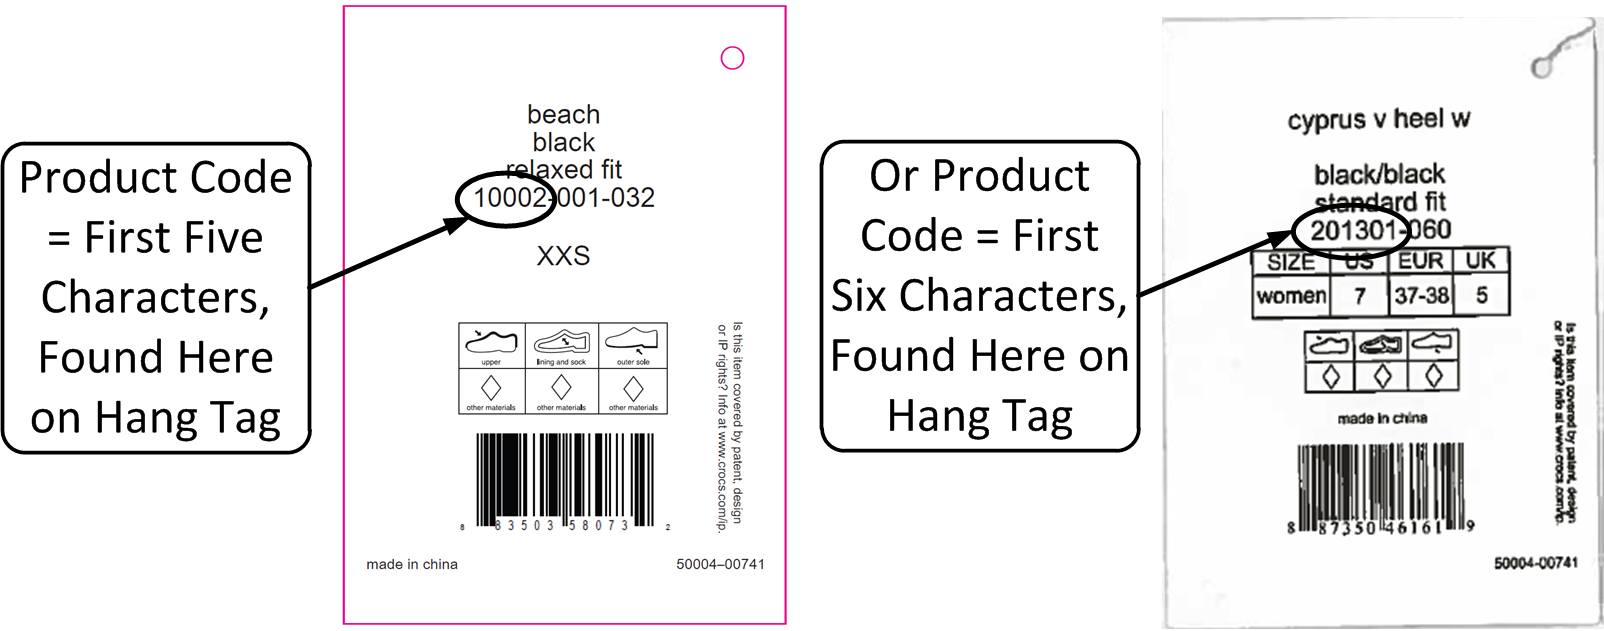 The product code is a five or six digit number found on the product hang tag.